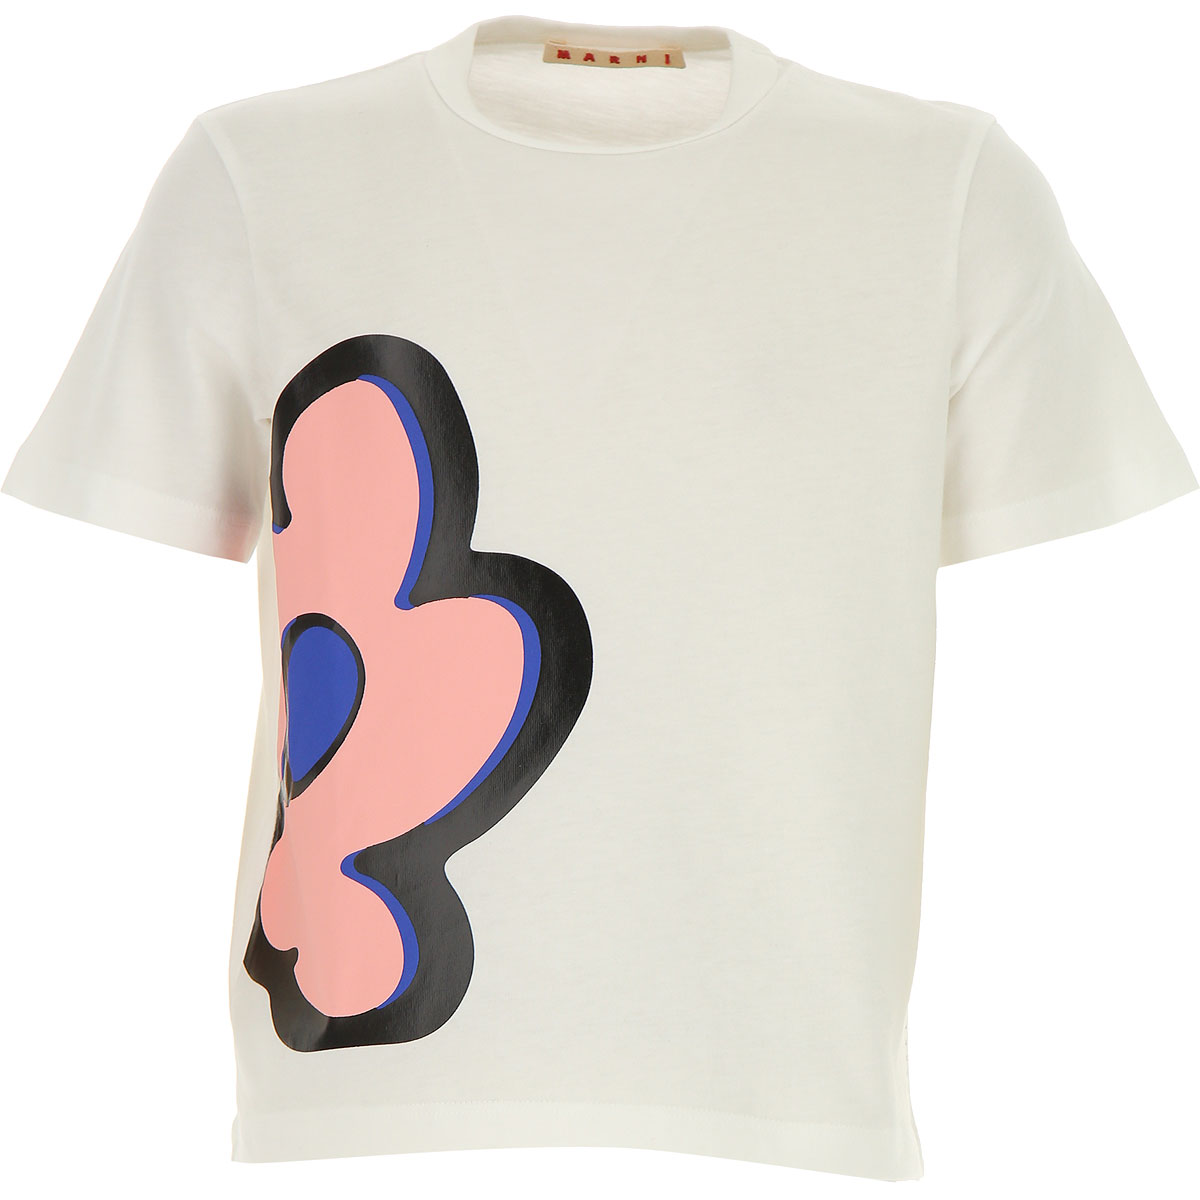 Image of Marni Kids T-Shirt for Girls, White, Cotton, 2017, 10Y 14Y 6Y 8Y